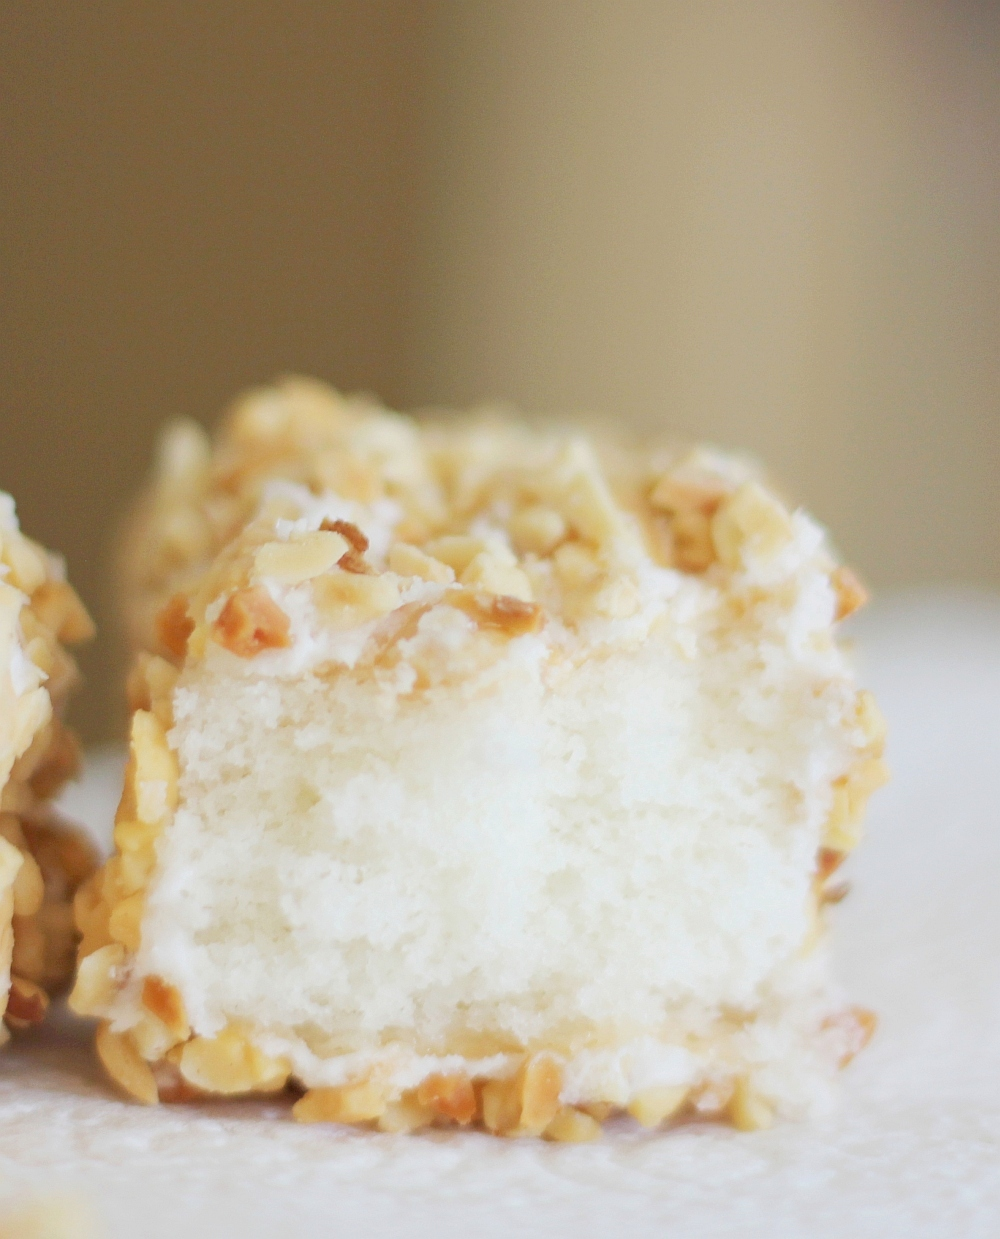 Peanut Squares Recipe - small white cake squares, frosted and rolled in finely chopped nuts. A bakery staple in the Midwest. Heaven. #misshomemade | Thousands of recipes: MissHomemade.com